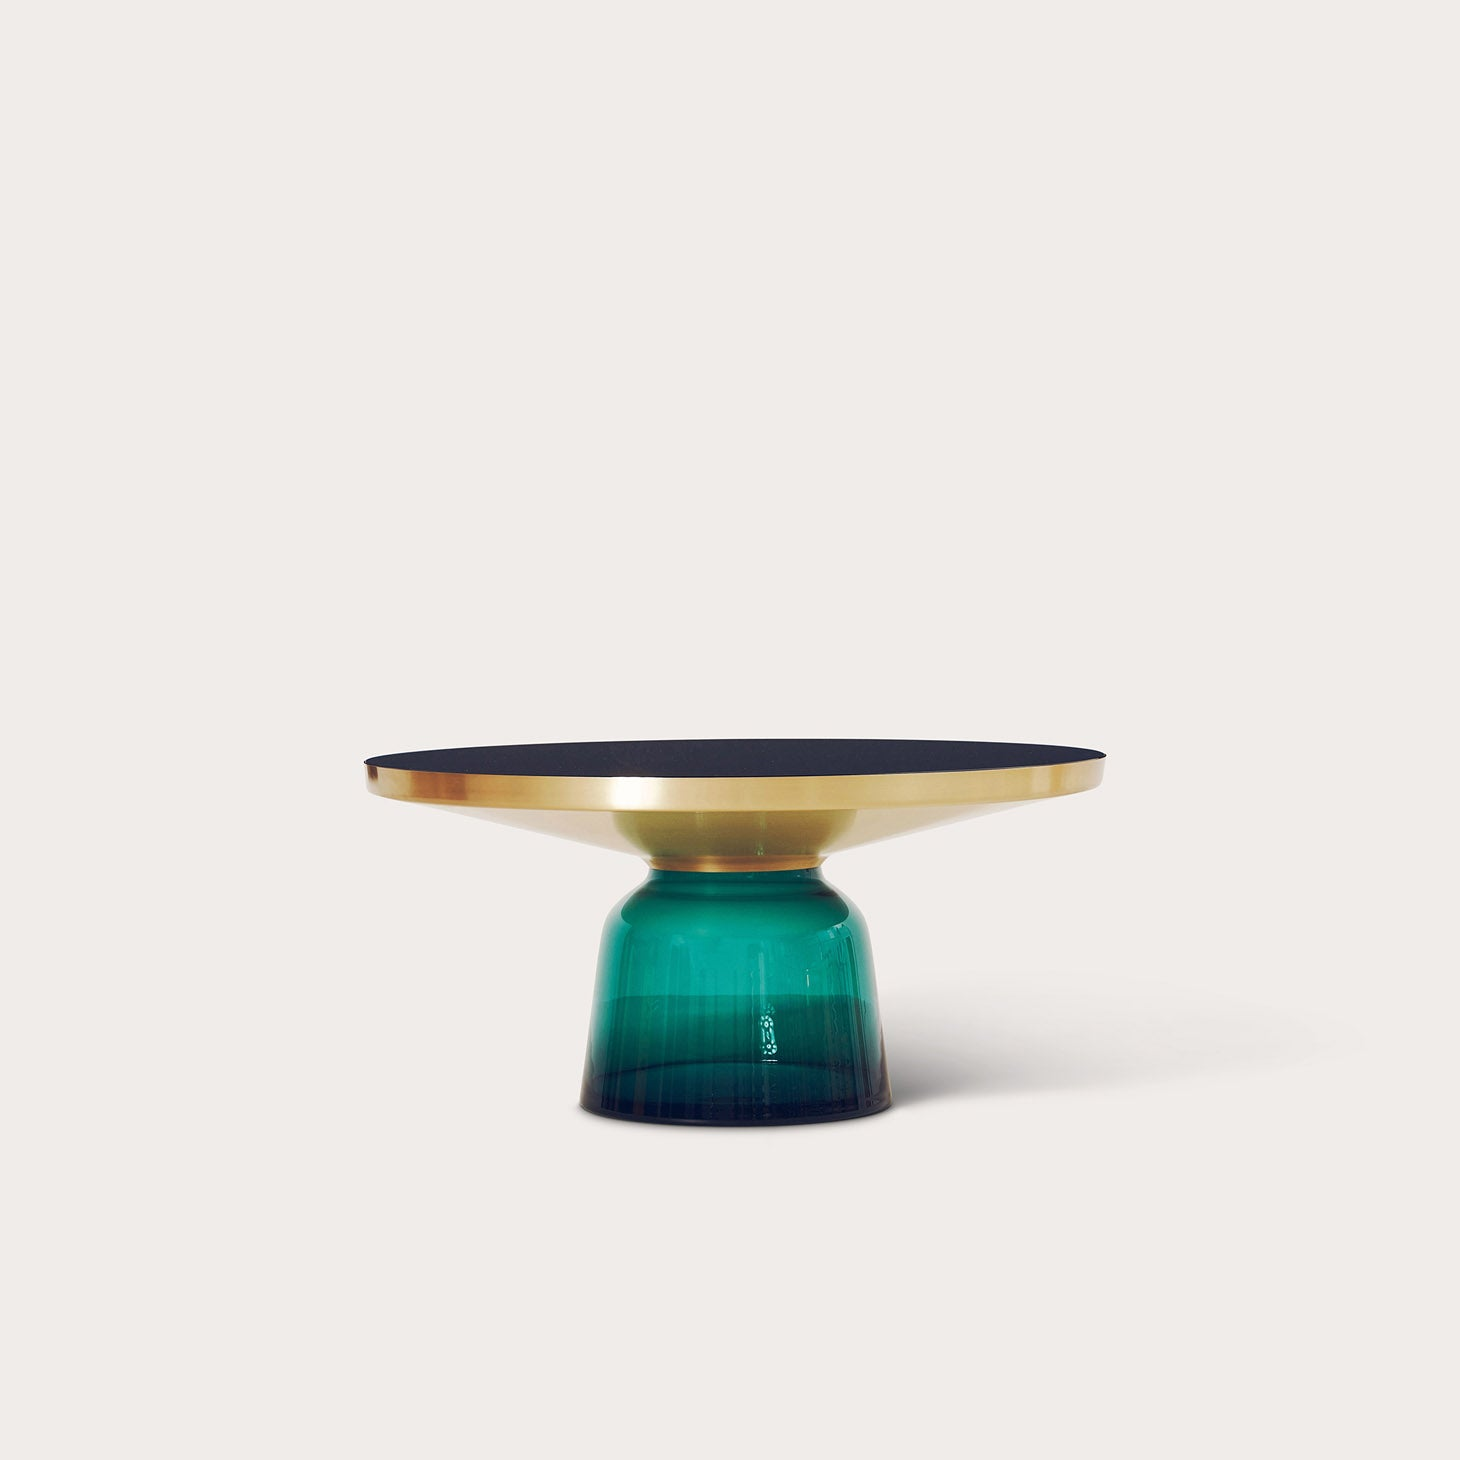 Bell Table Tables Sebastian Herkner Designer Furniture Sku: 001-230-10166